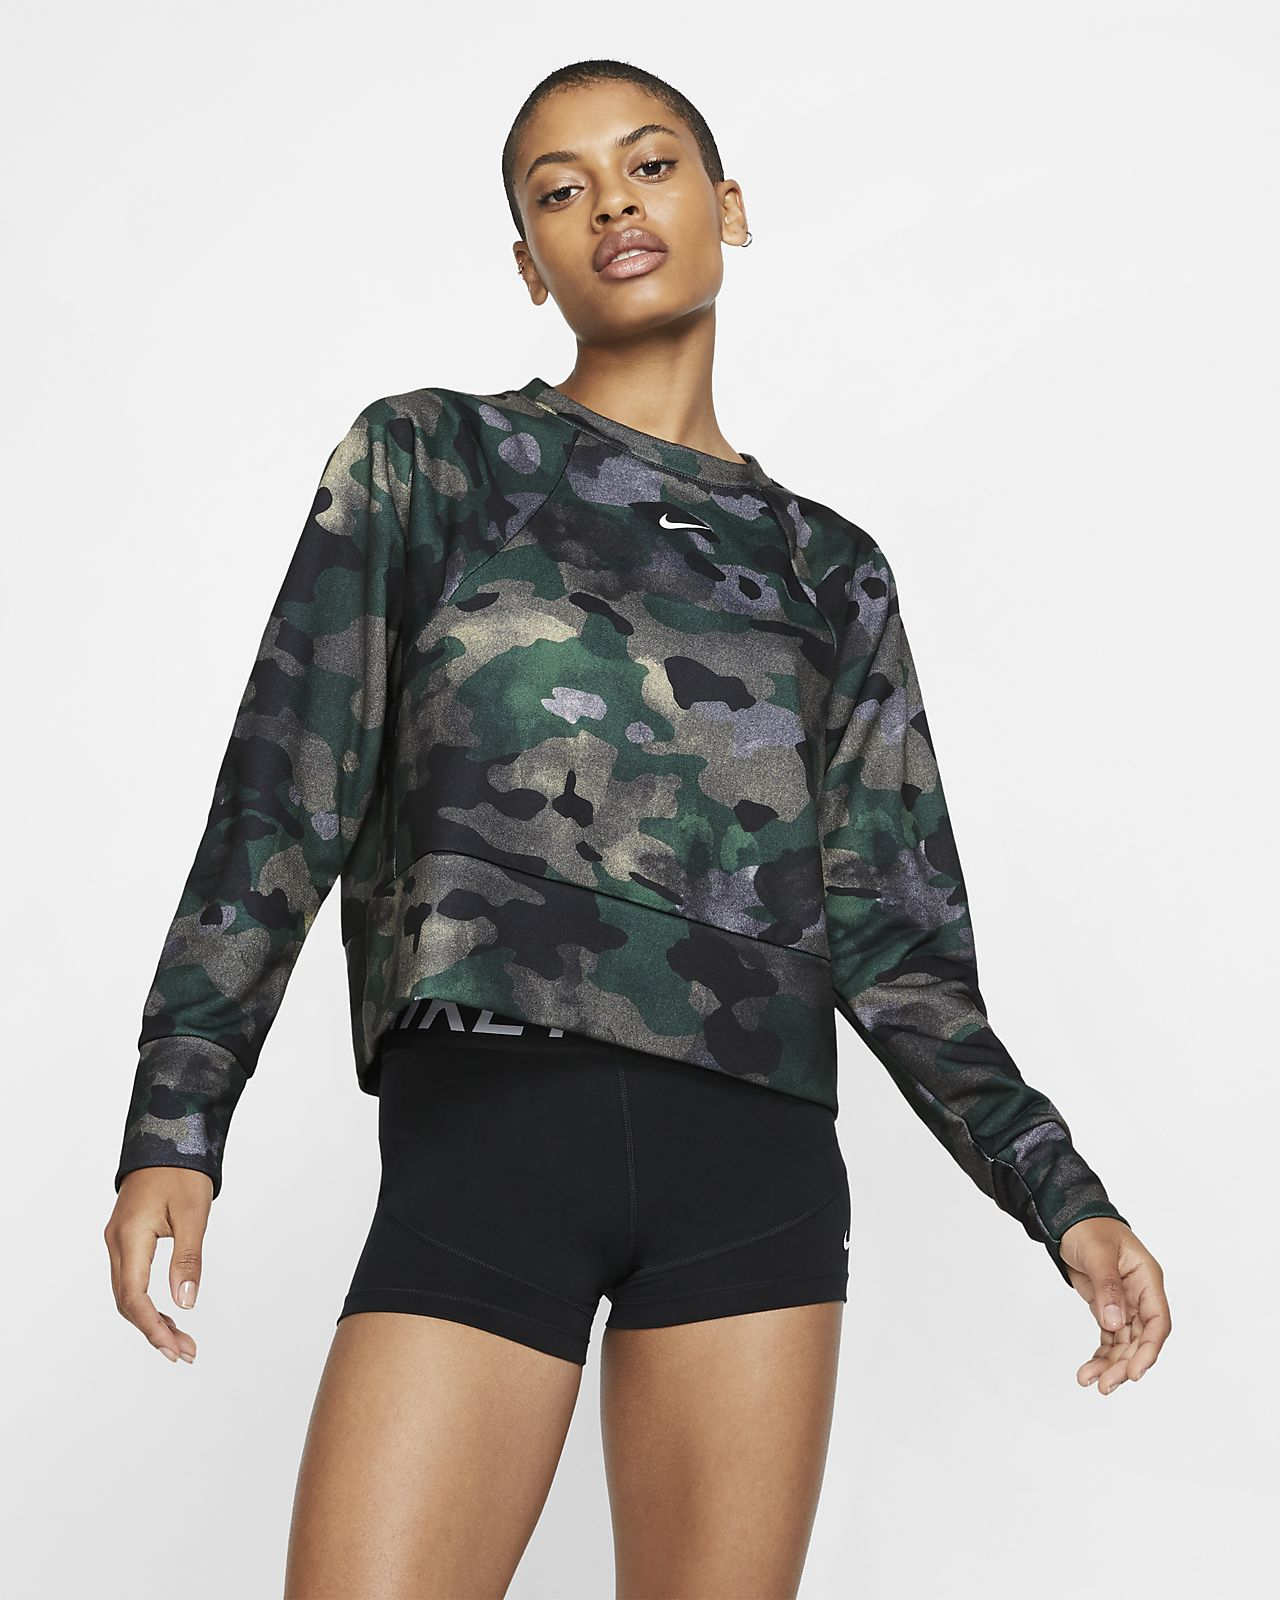 Nike Dri-FIT Women's Fleece Camo Training Top